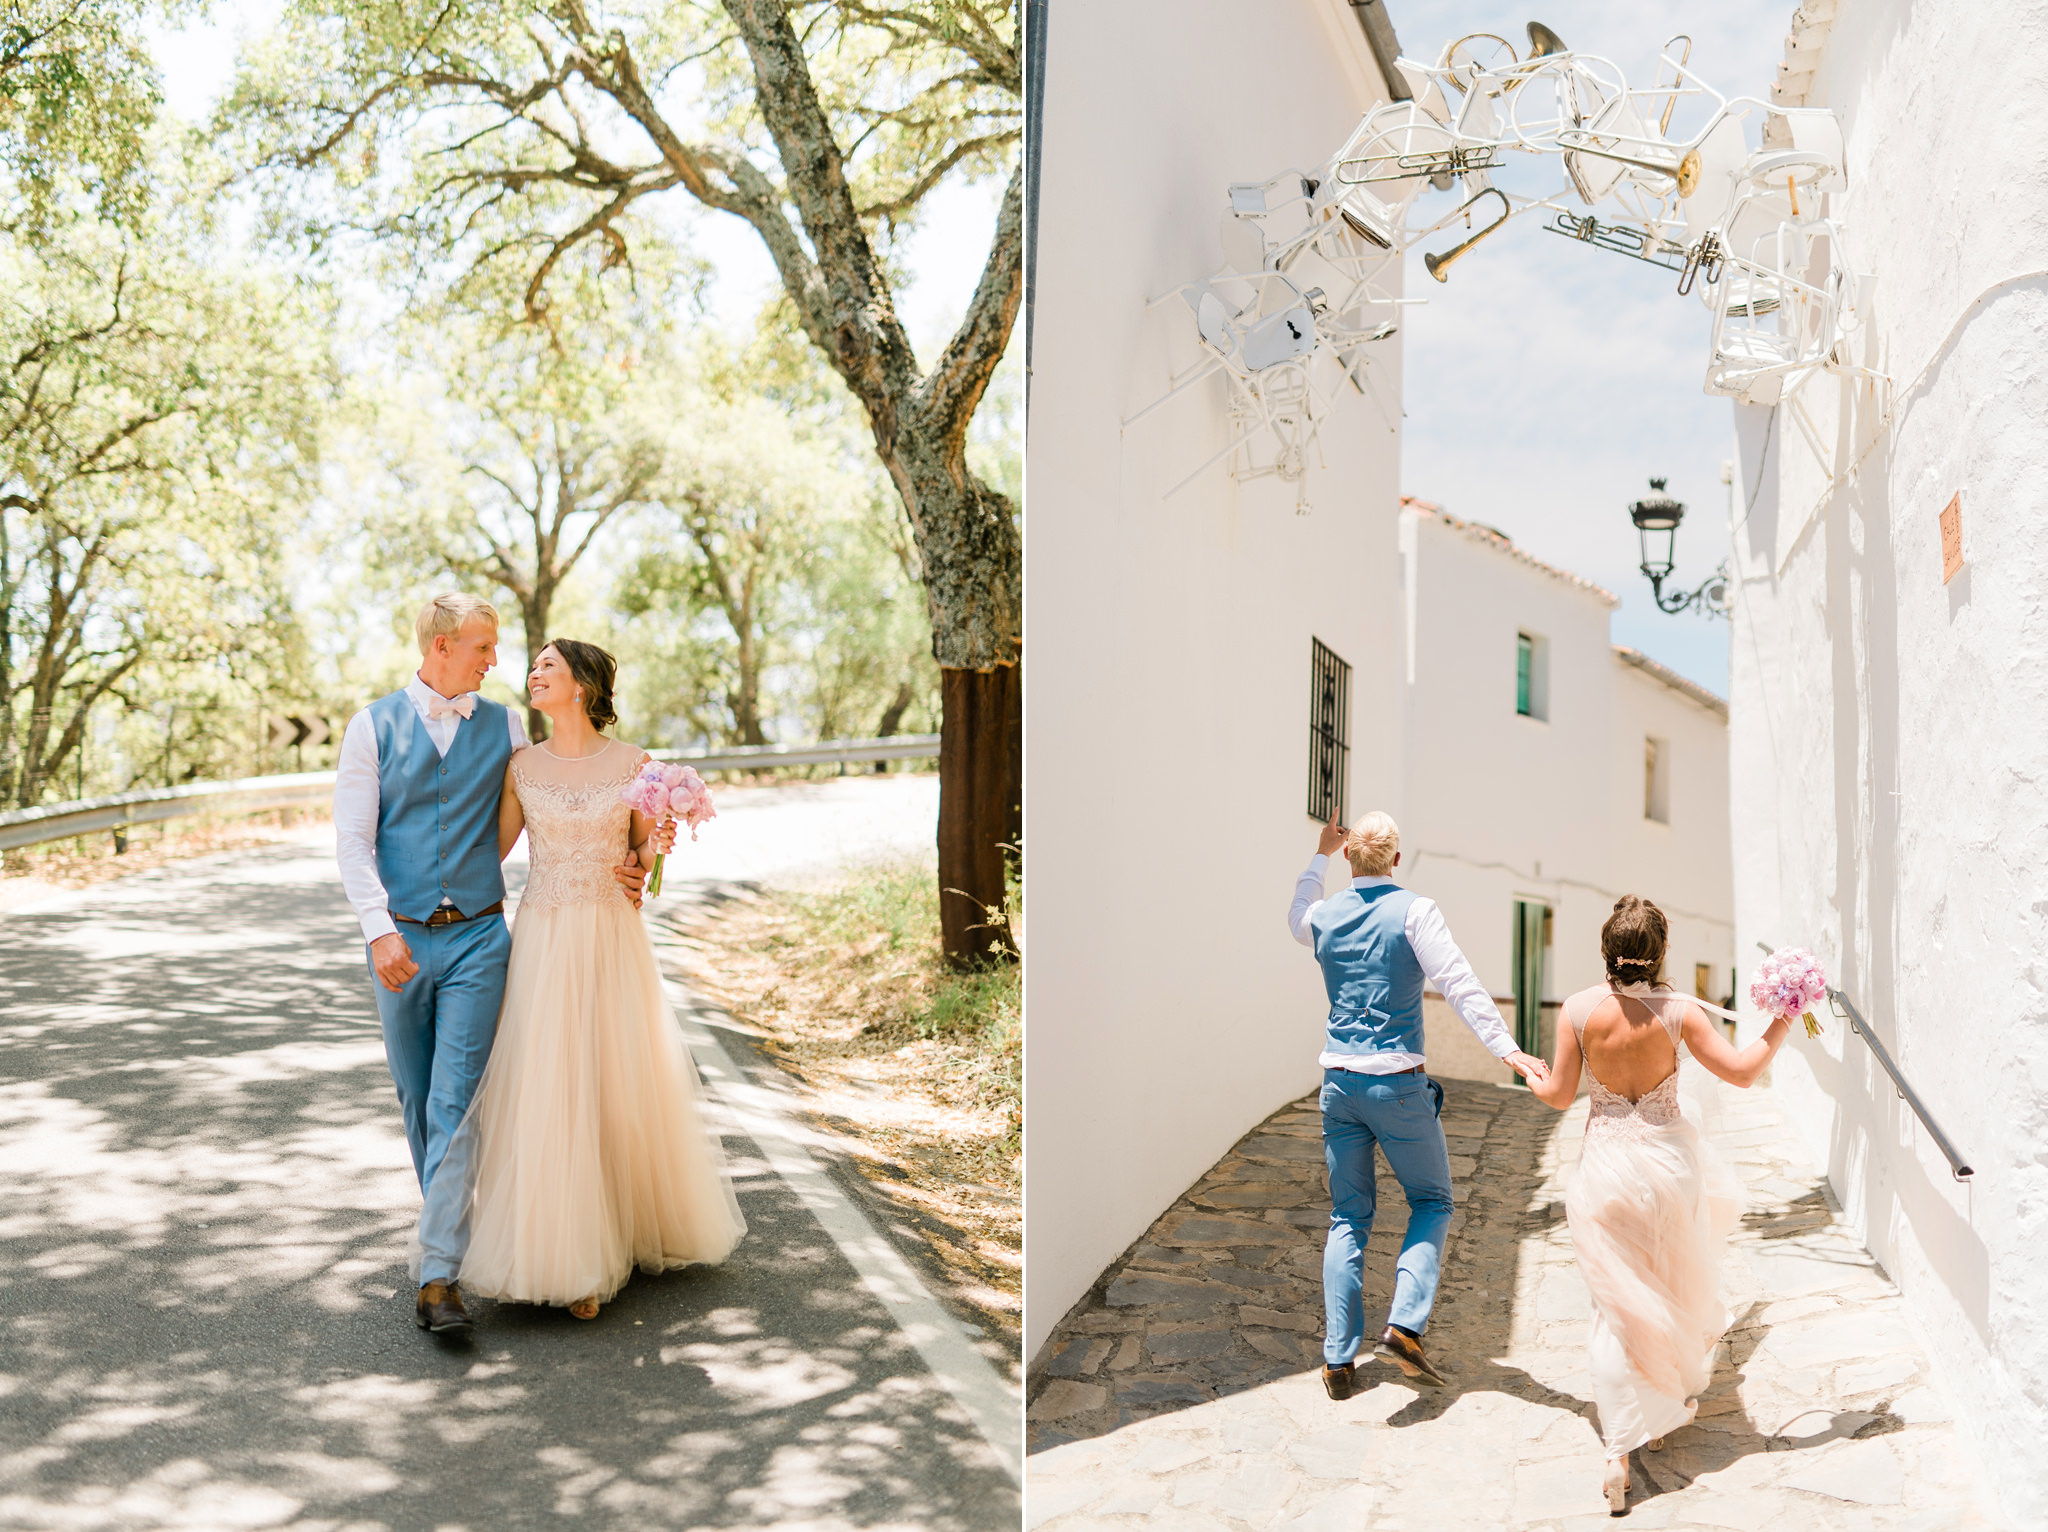 best-wedding-photographer-spain-andalucia-ronda-malaga-mj-studio